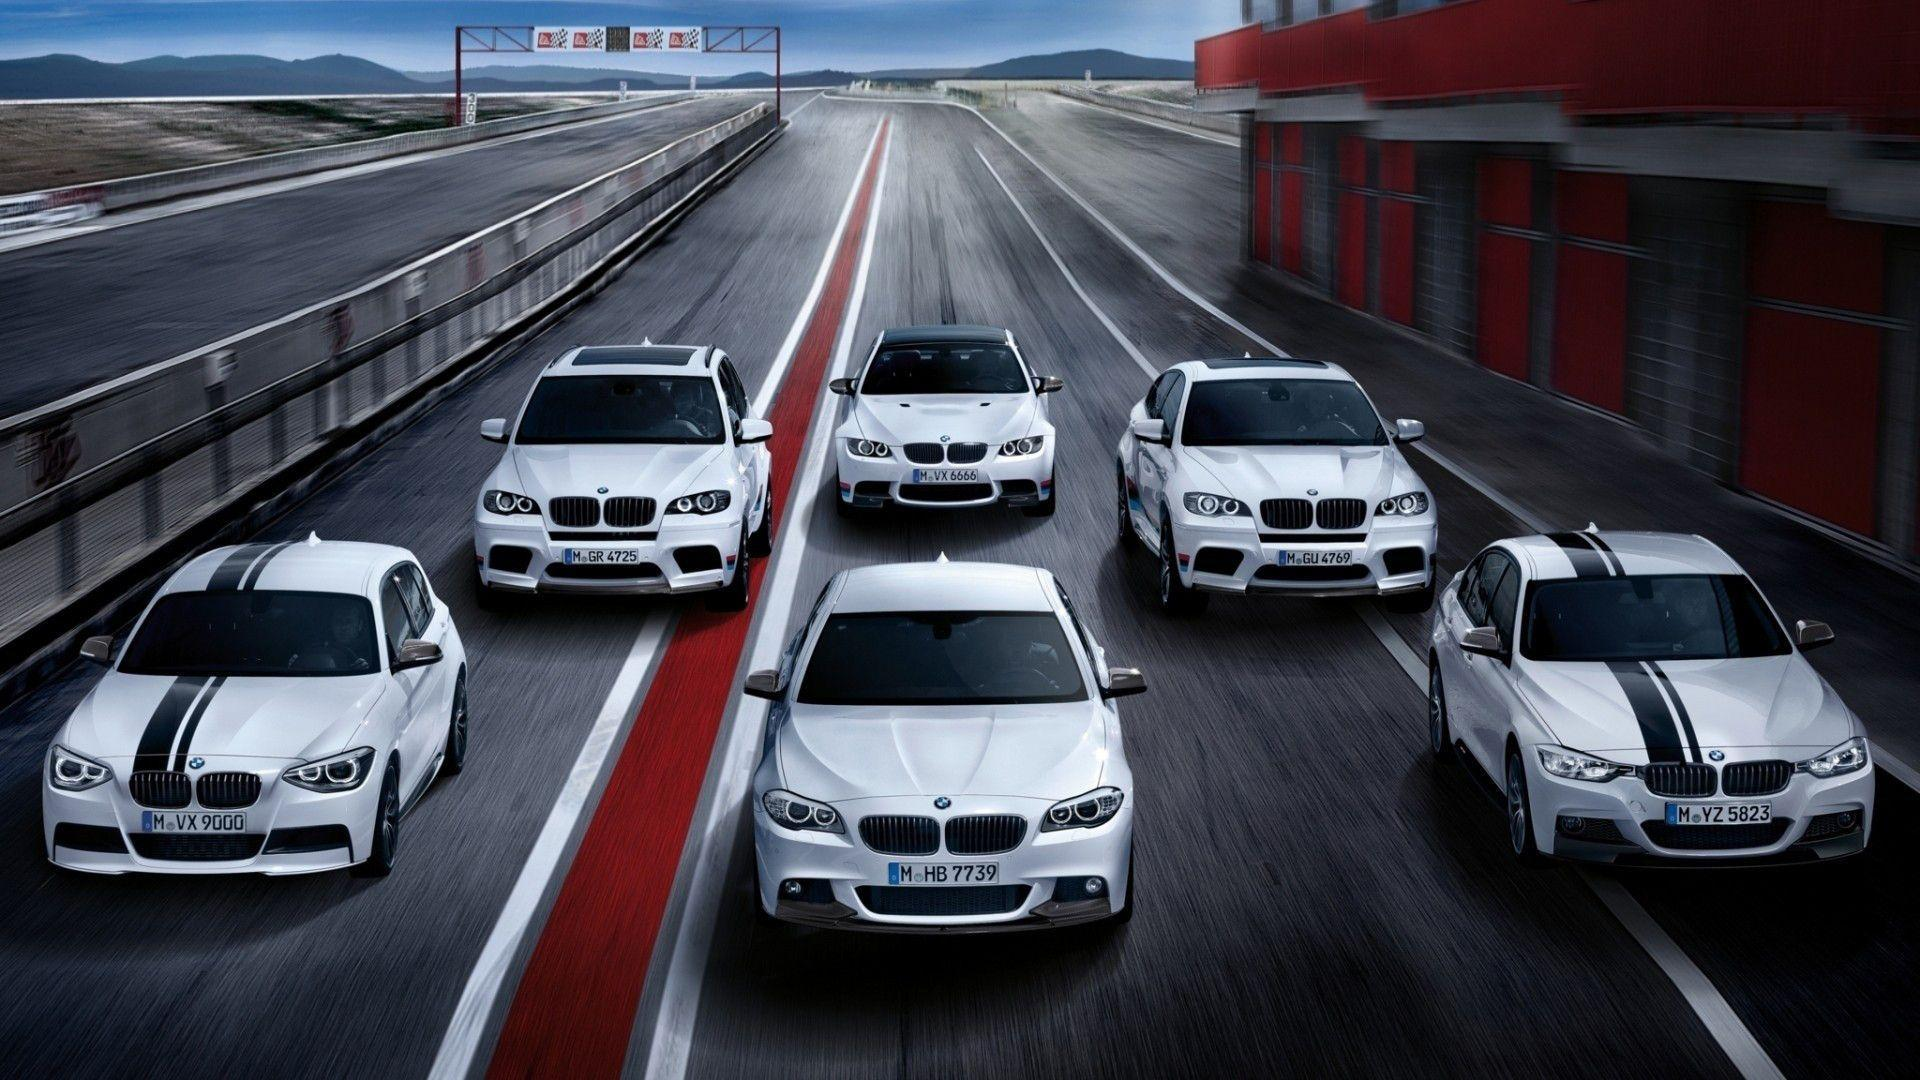 Bmw M Series Wallpapers Top Free Bmw M Series Backgrounds